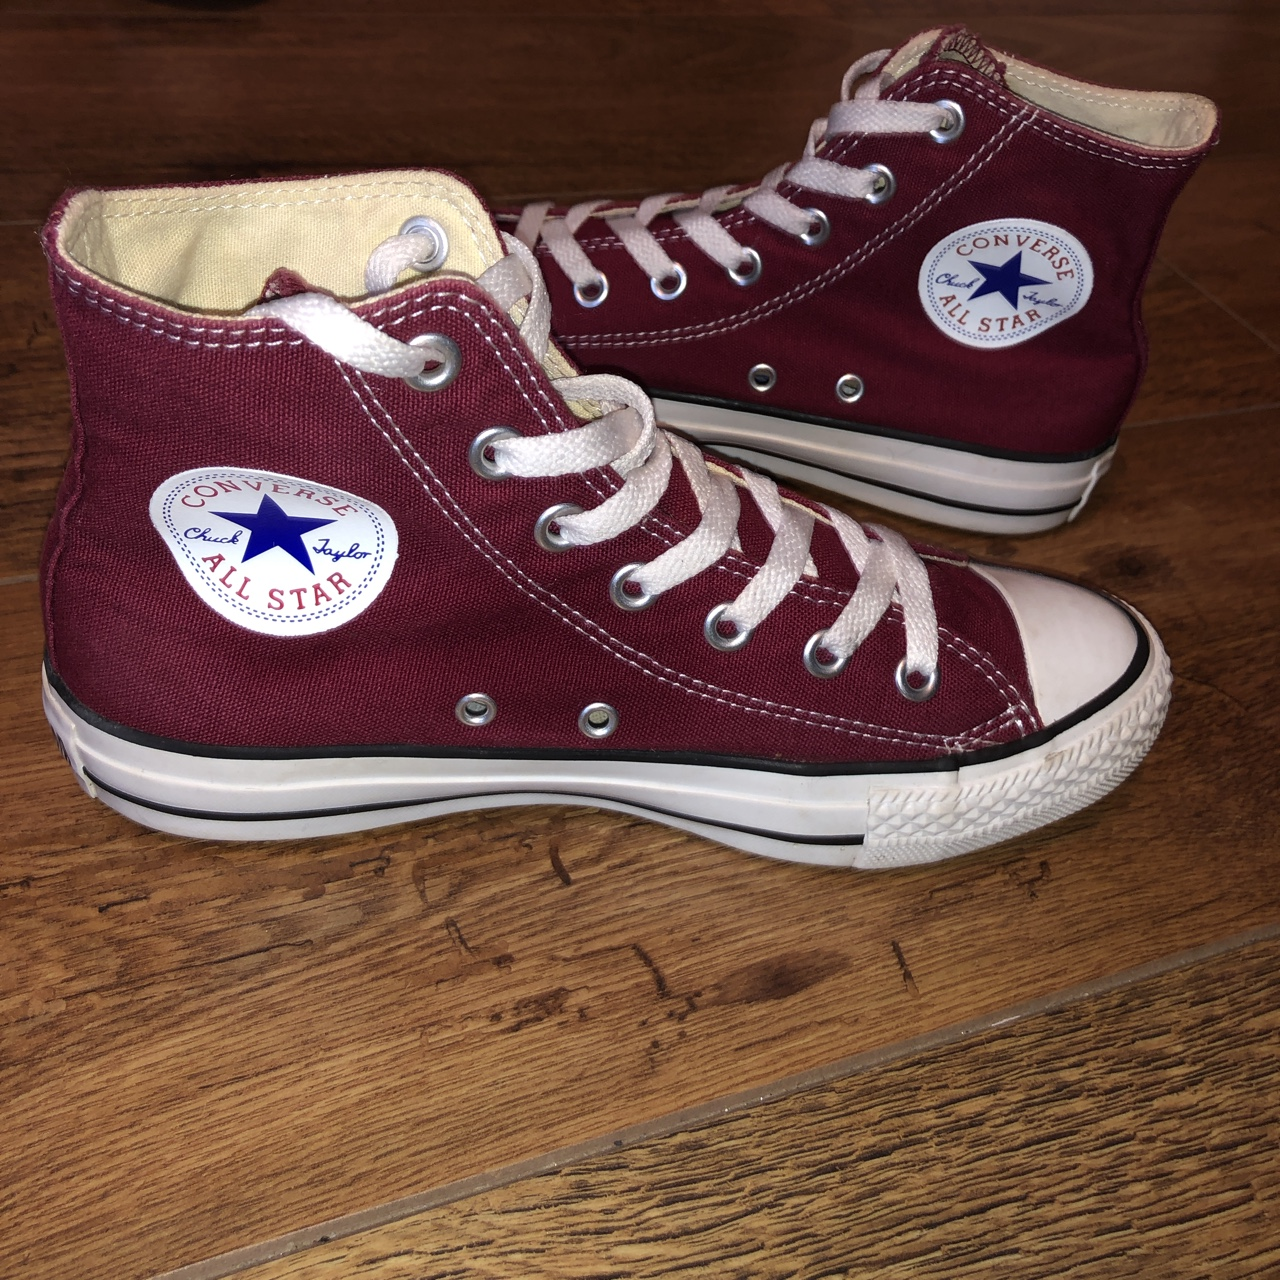 80b89f66785bf Converse Size 5 Lovely Plum Red Colour Fantastic... - Depop